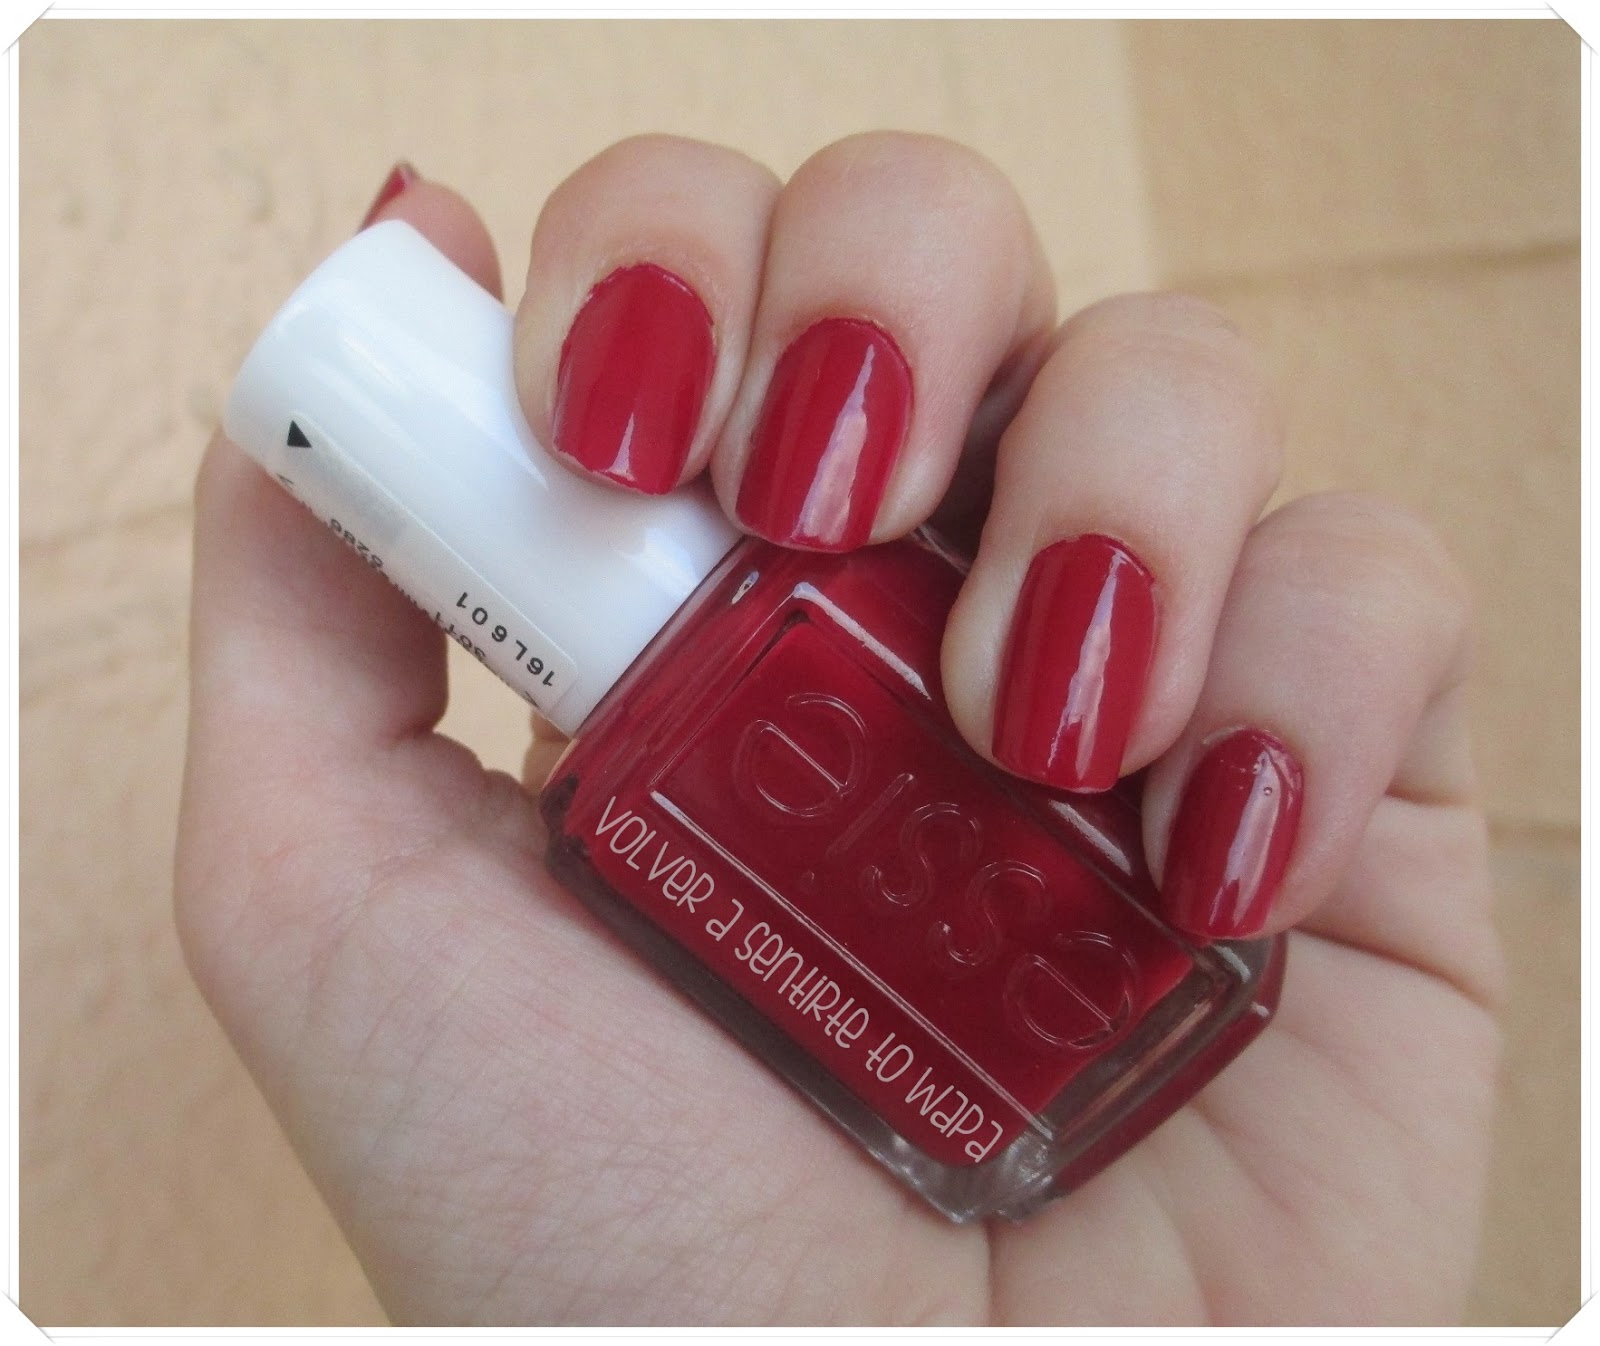 ESSIE Nails - otoño 2014 - Dress to Kilt